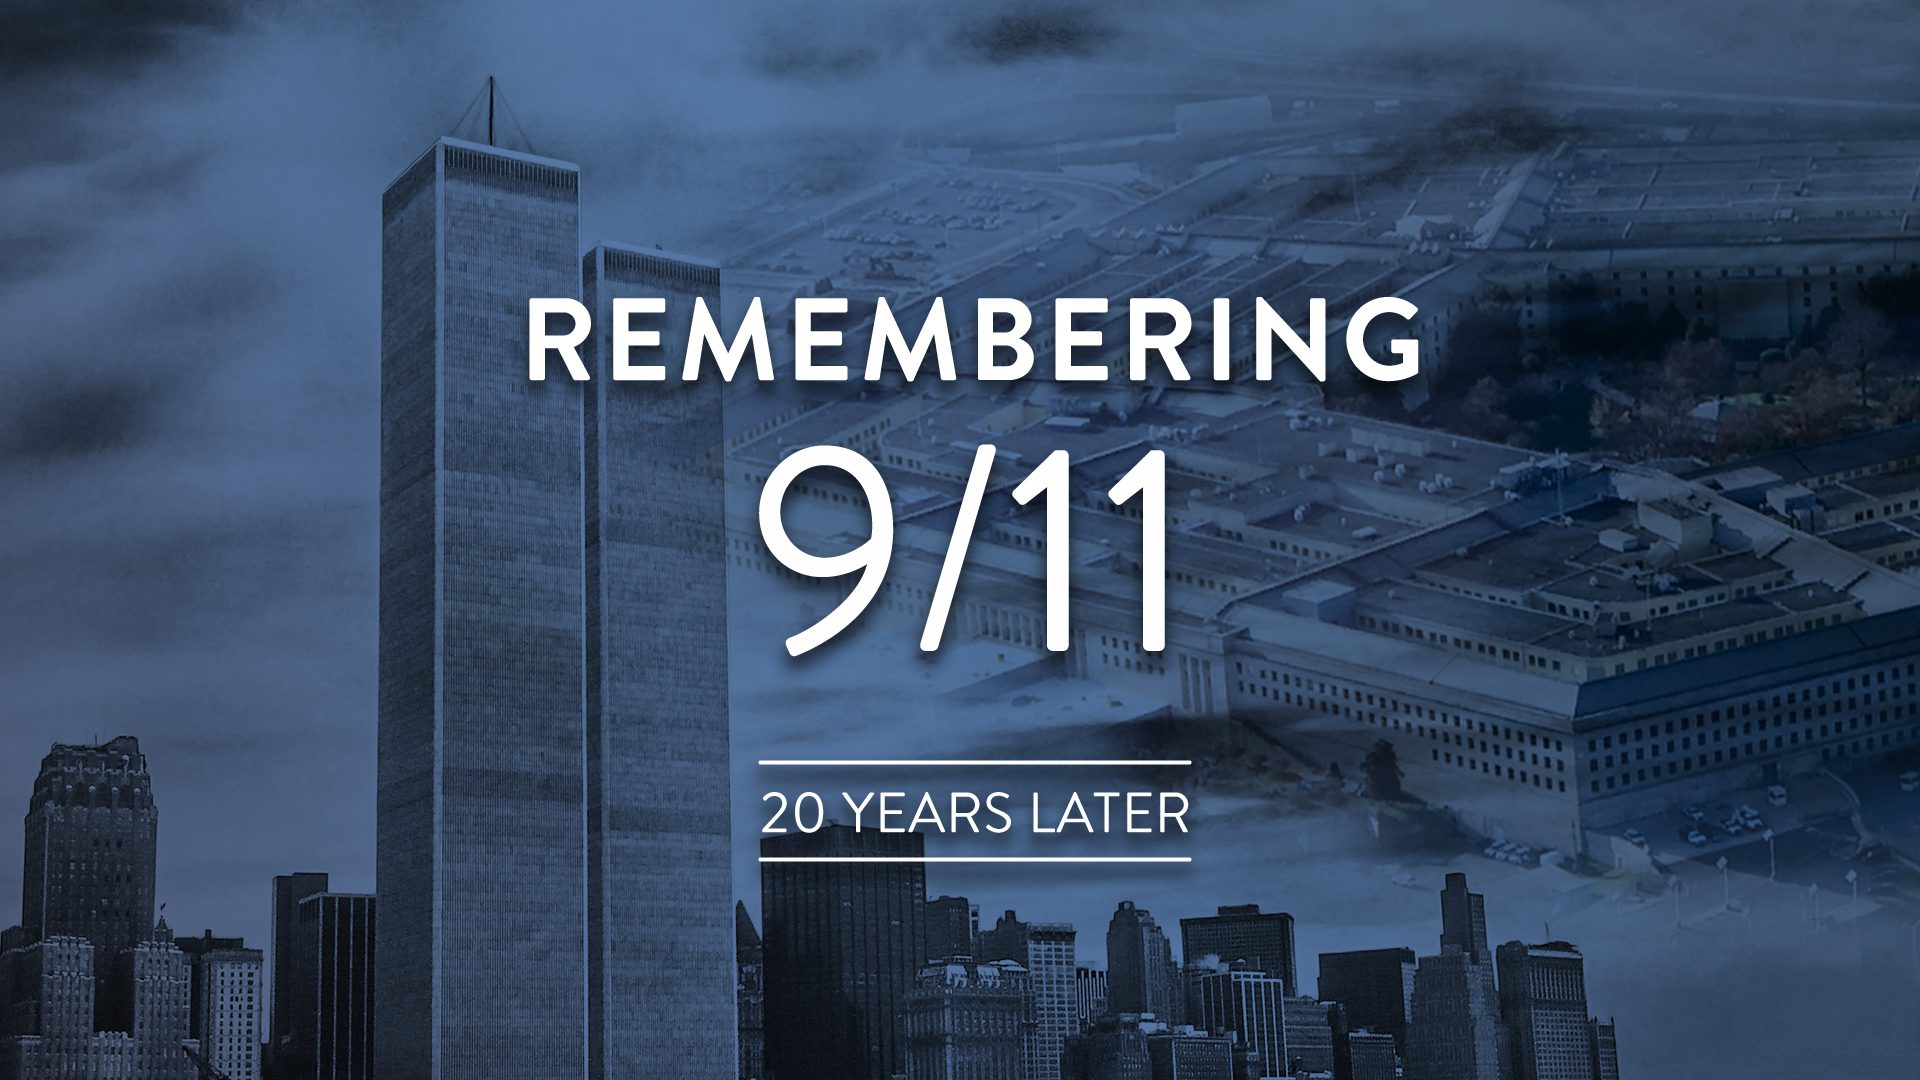 Remembering 9/11 20 Years Later